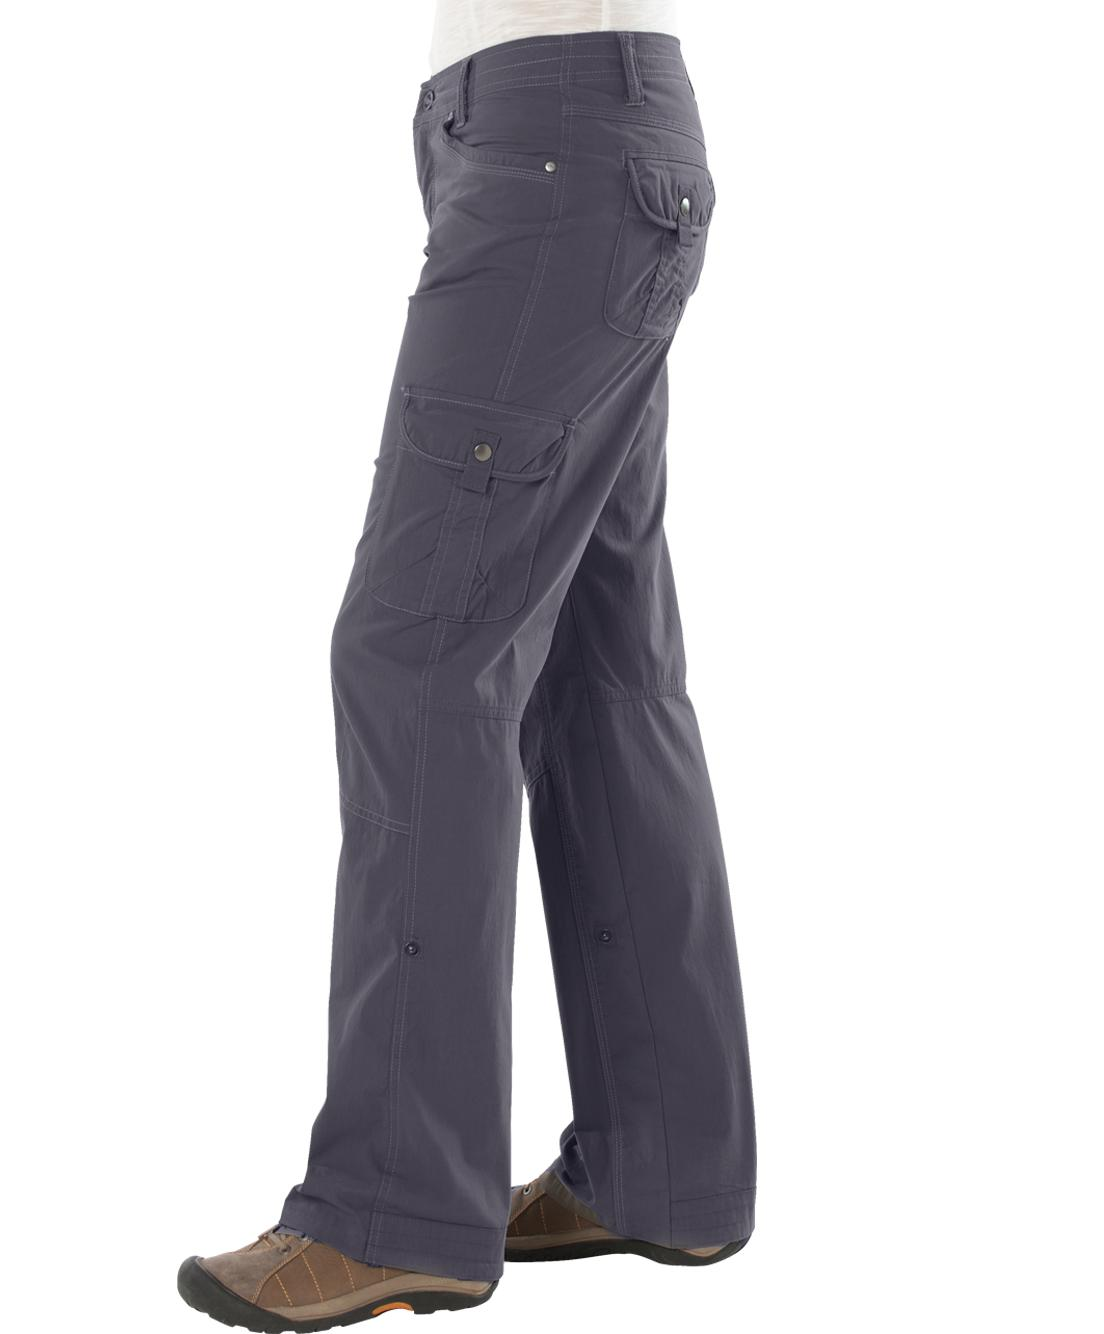 Innovative Multifunctional Pants Are A Necessity As You Are Hiking And Backpacking The Kuhl Womens Splash Roll Up Pant Are Just That These Lightweight Pants Are Extremely Comfortable With A Cottony Feel And Just Enough Spandex To Allow You To